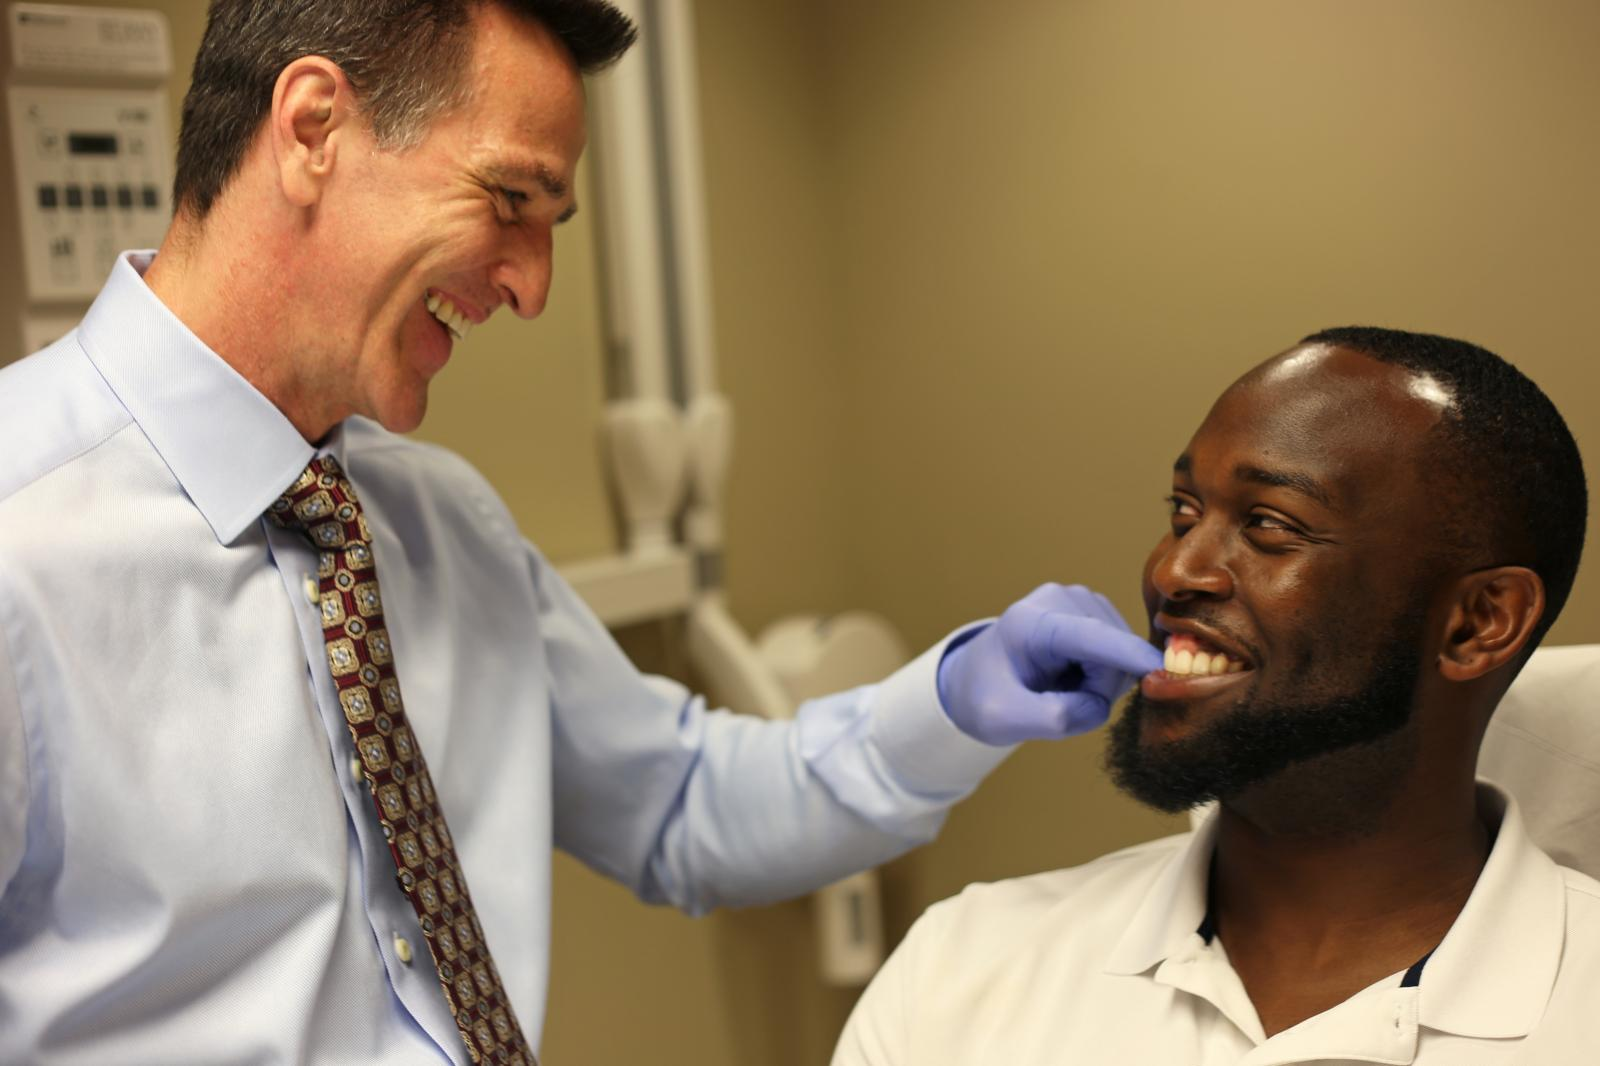 Man getting an orthodontic consultation